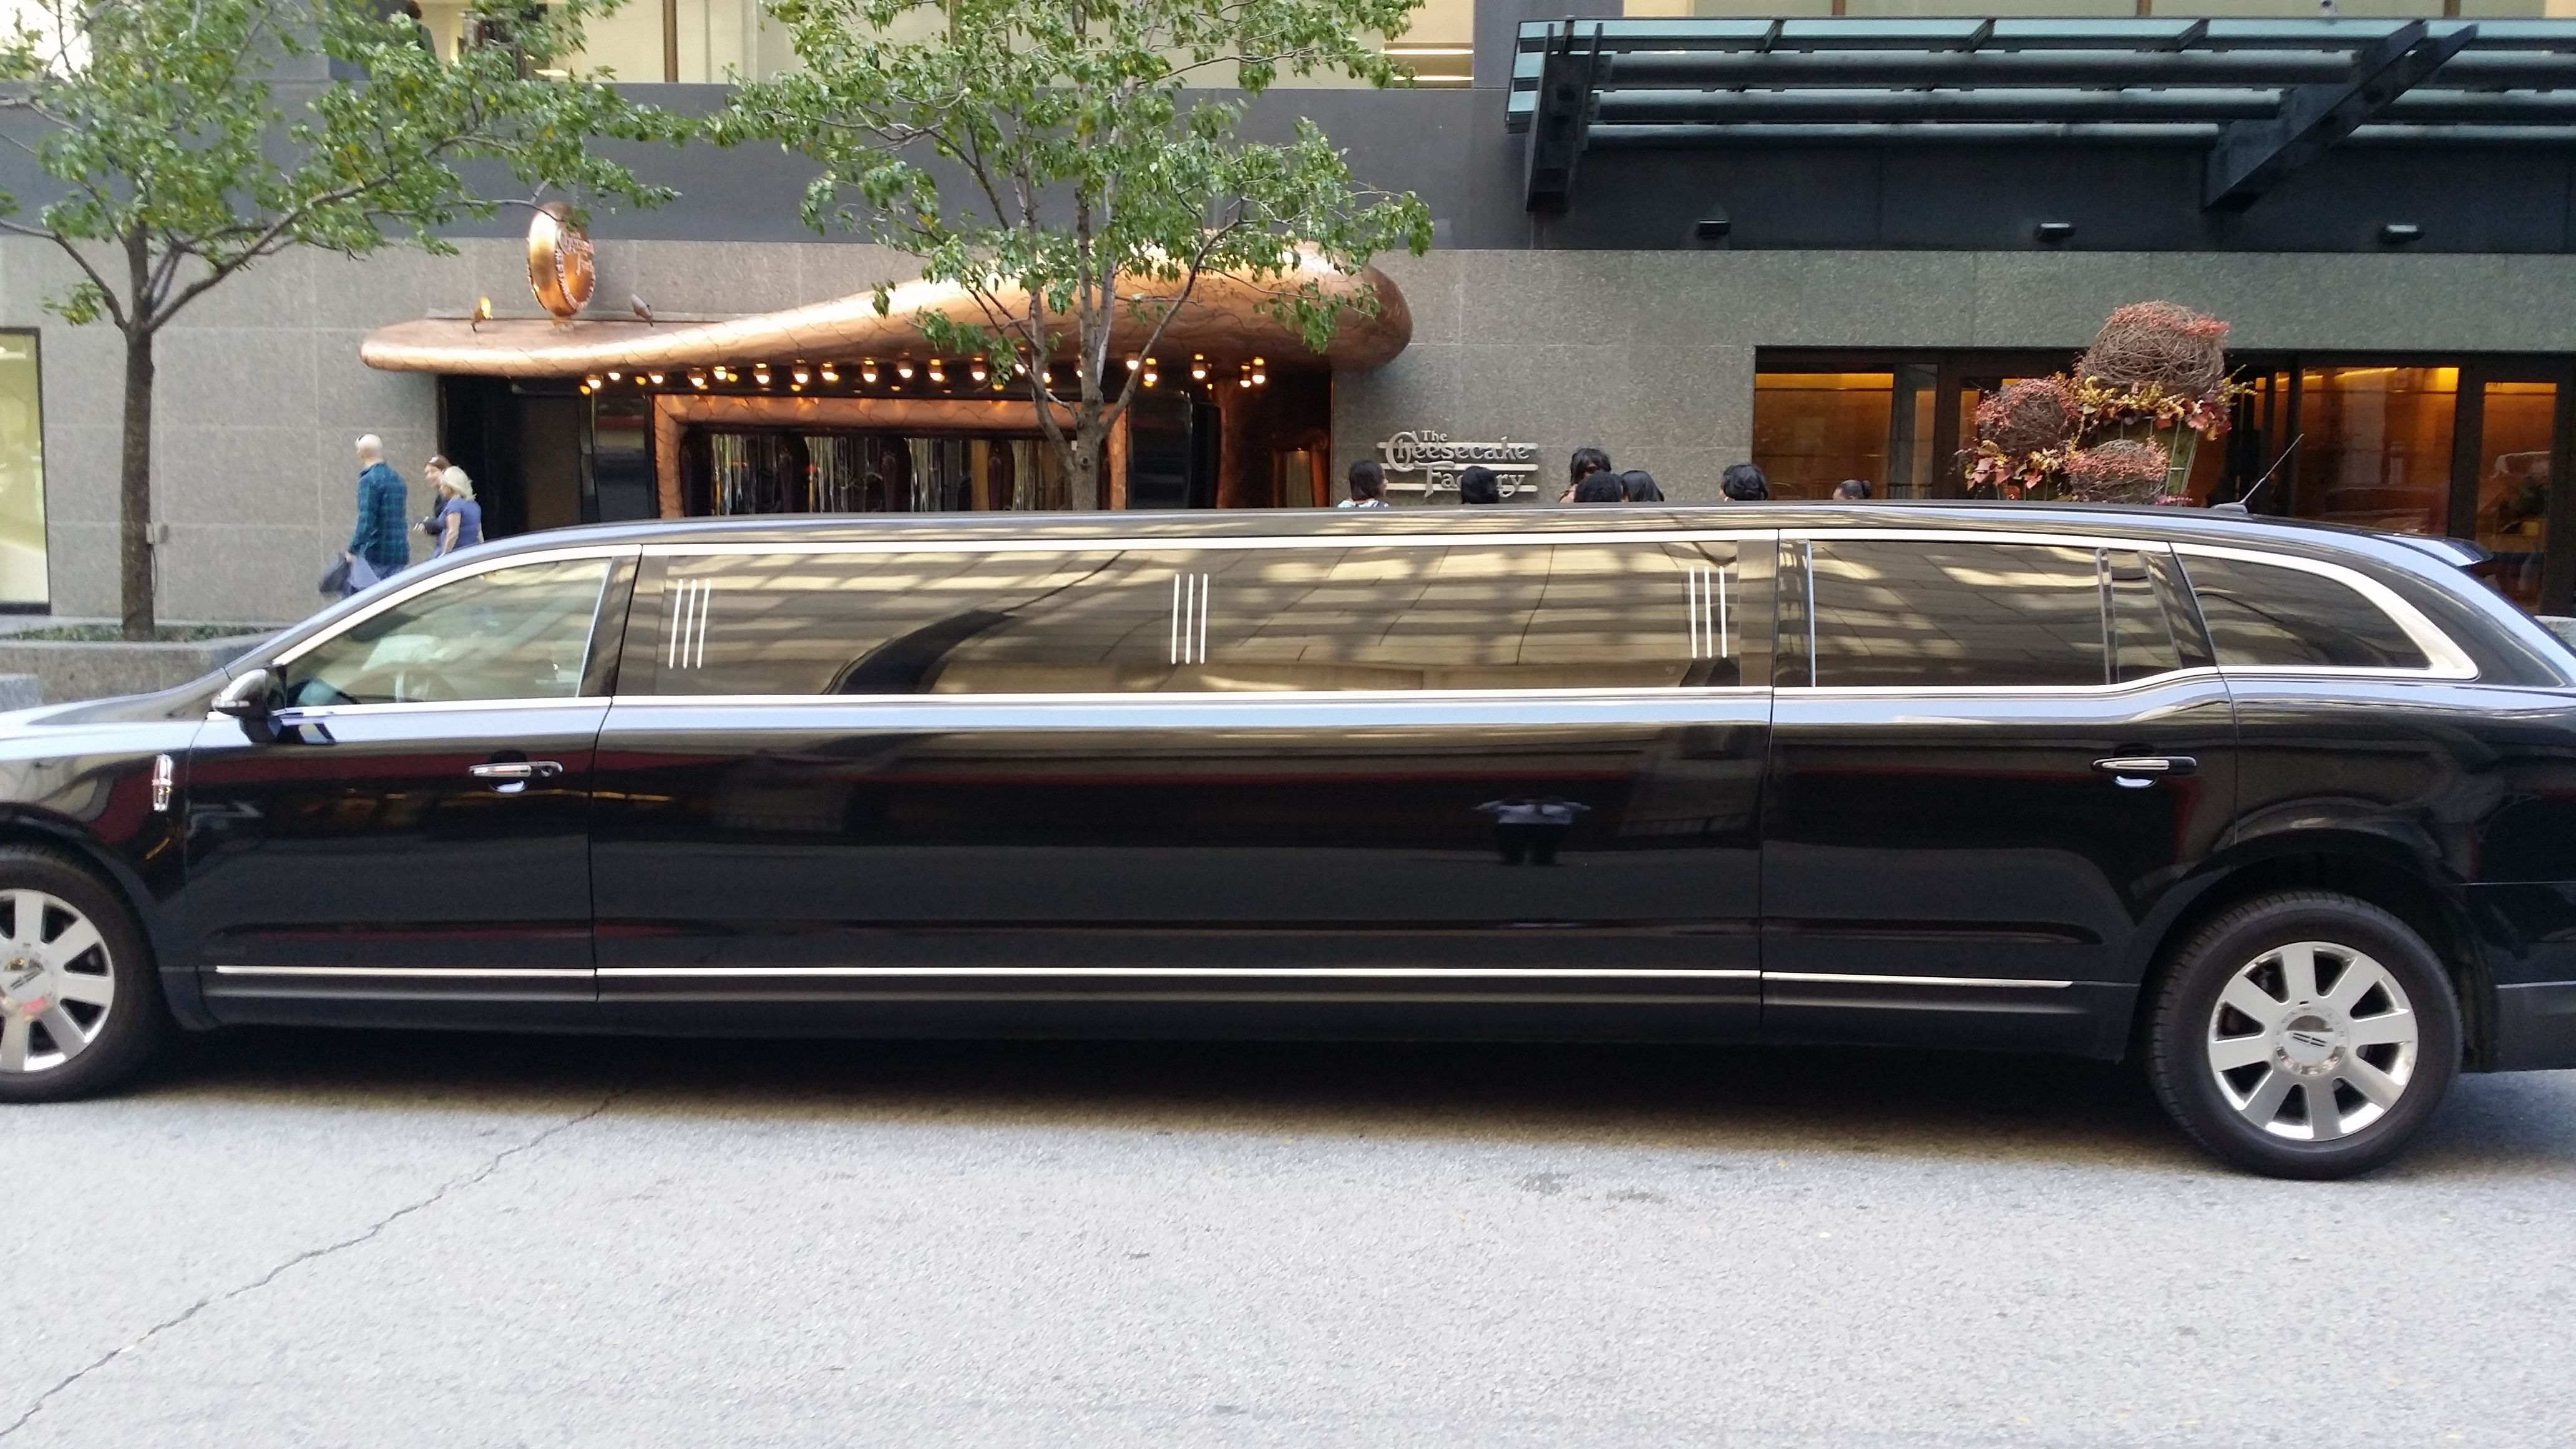 The best part of the day! Chicago limo, Suv car, Car